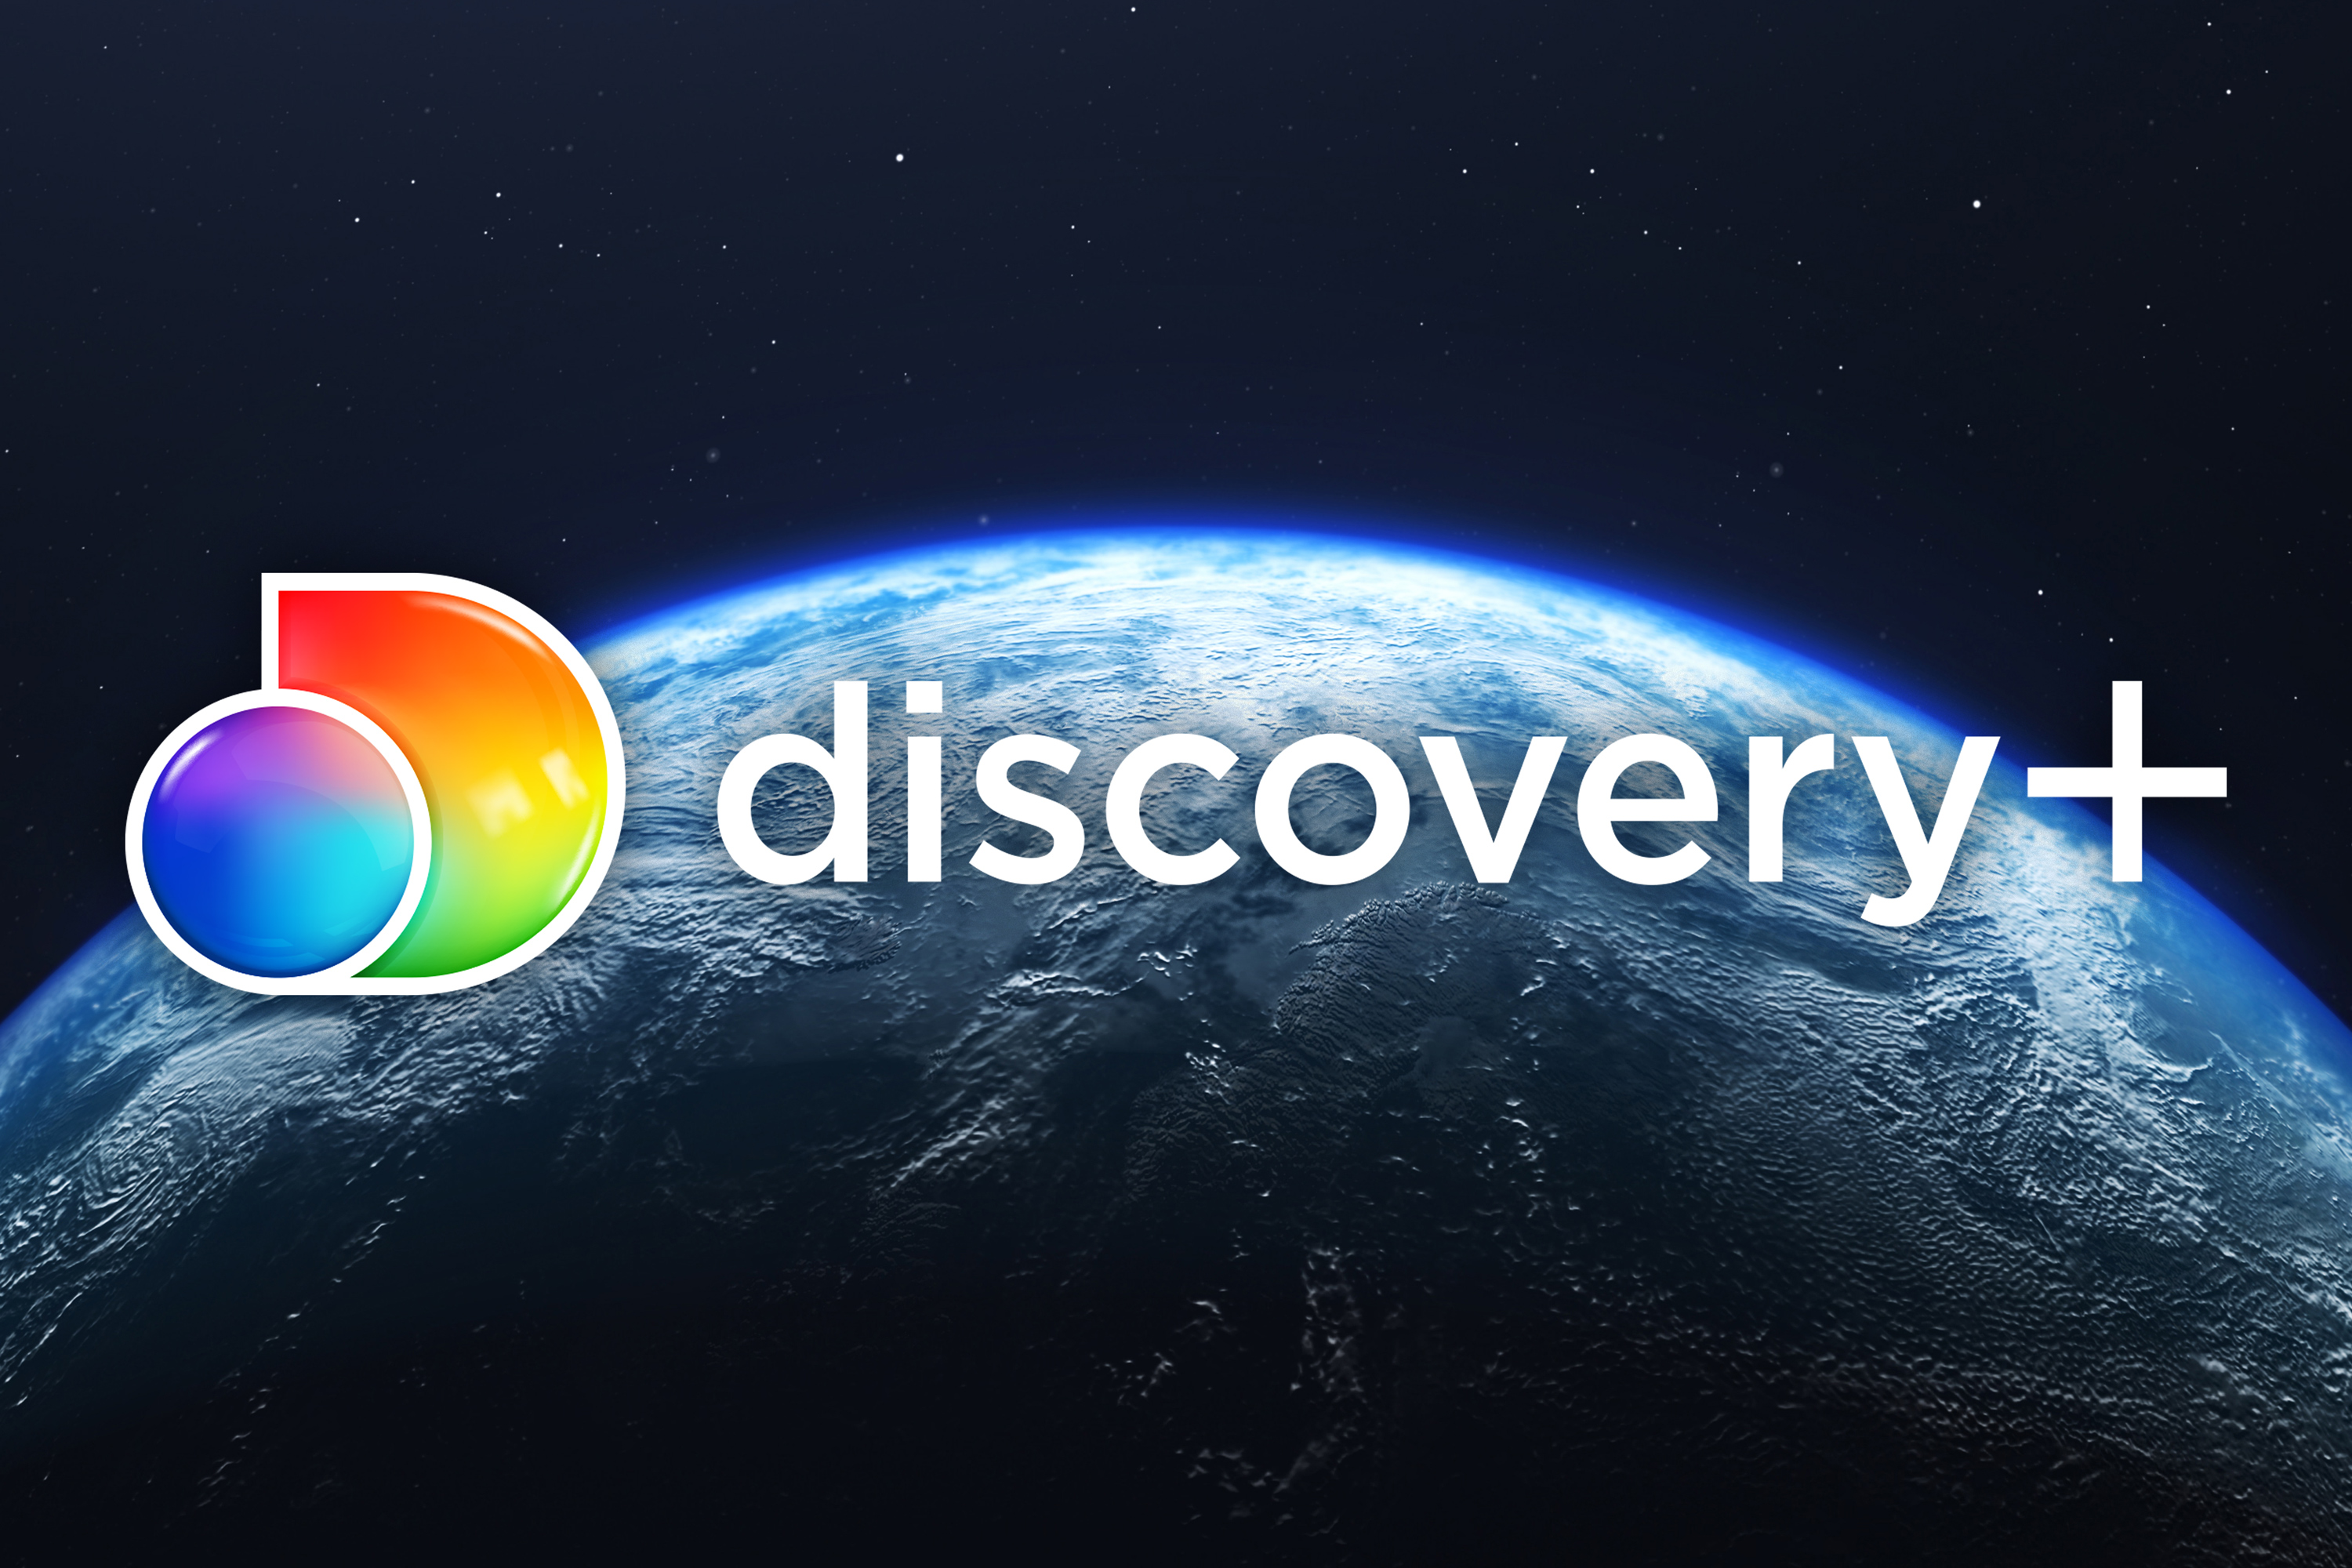 Discovery isn't looking to build an exclusive ad club with its streaming service